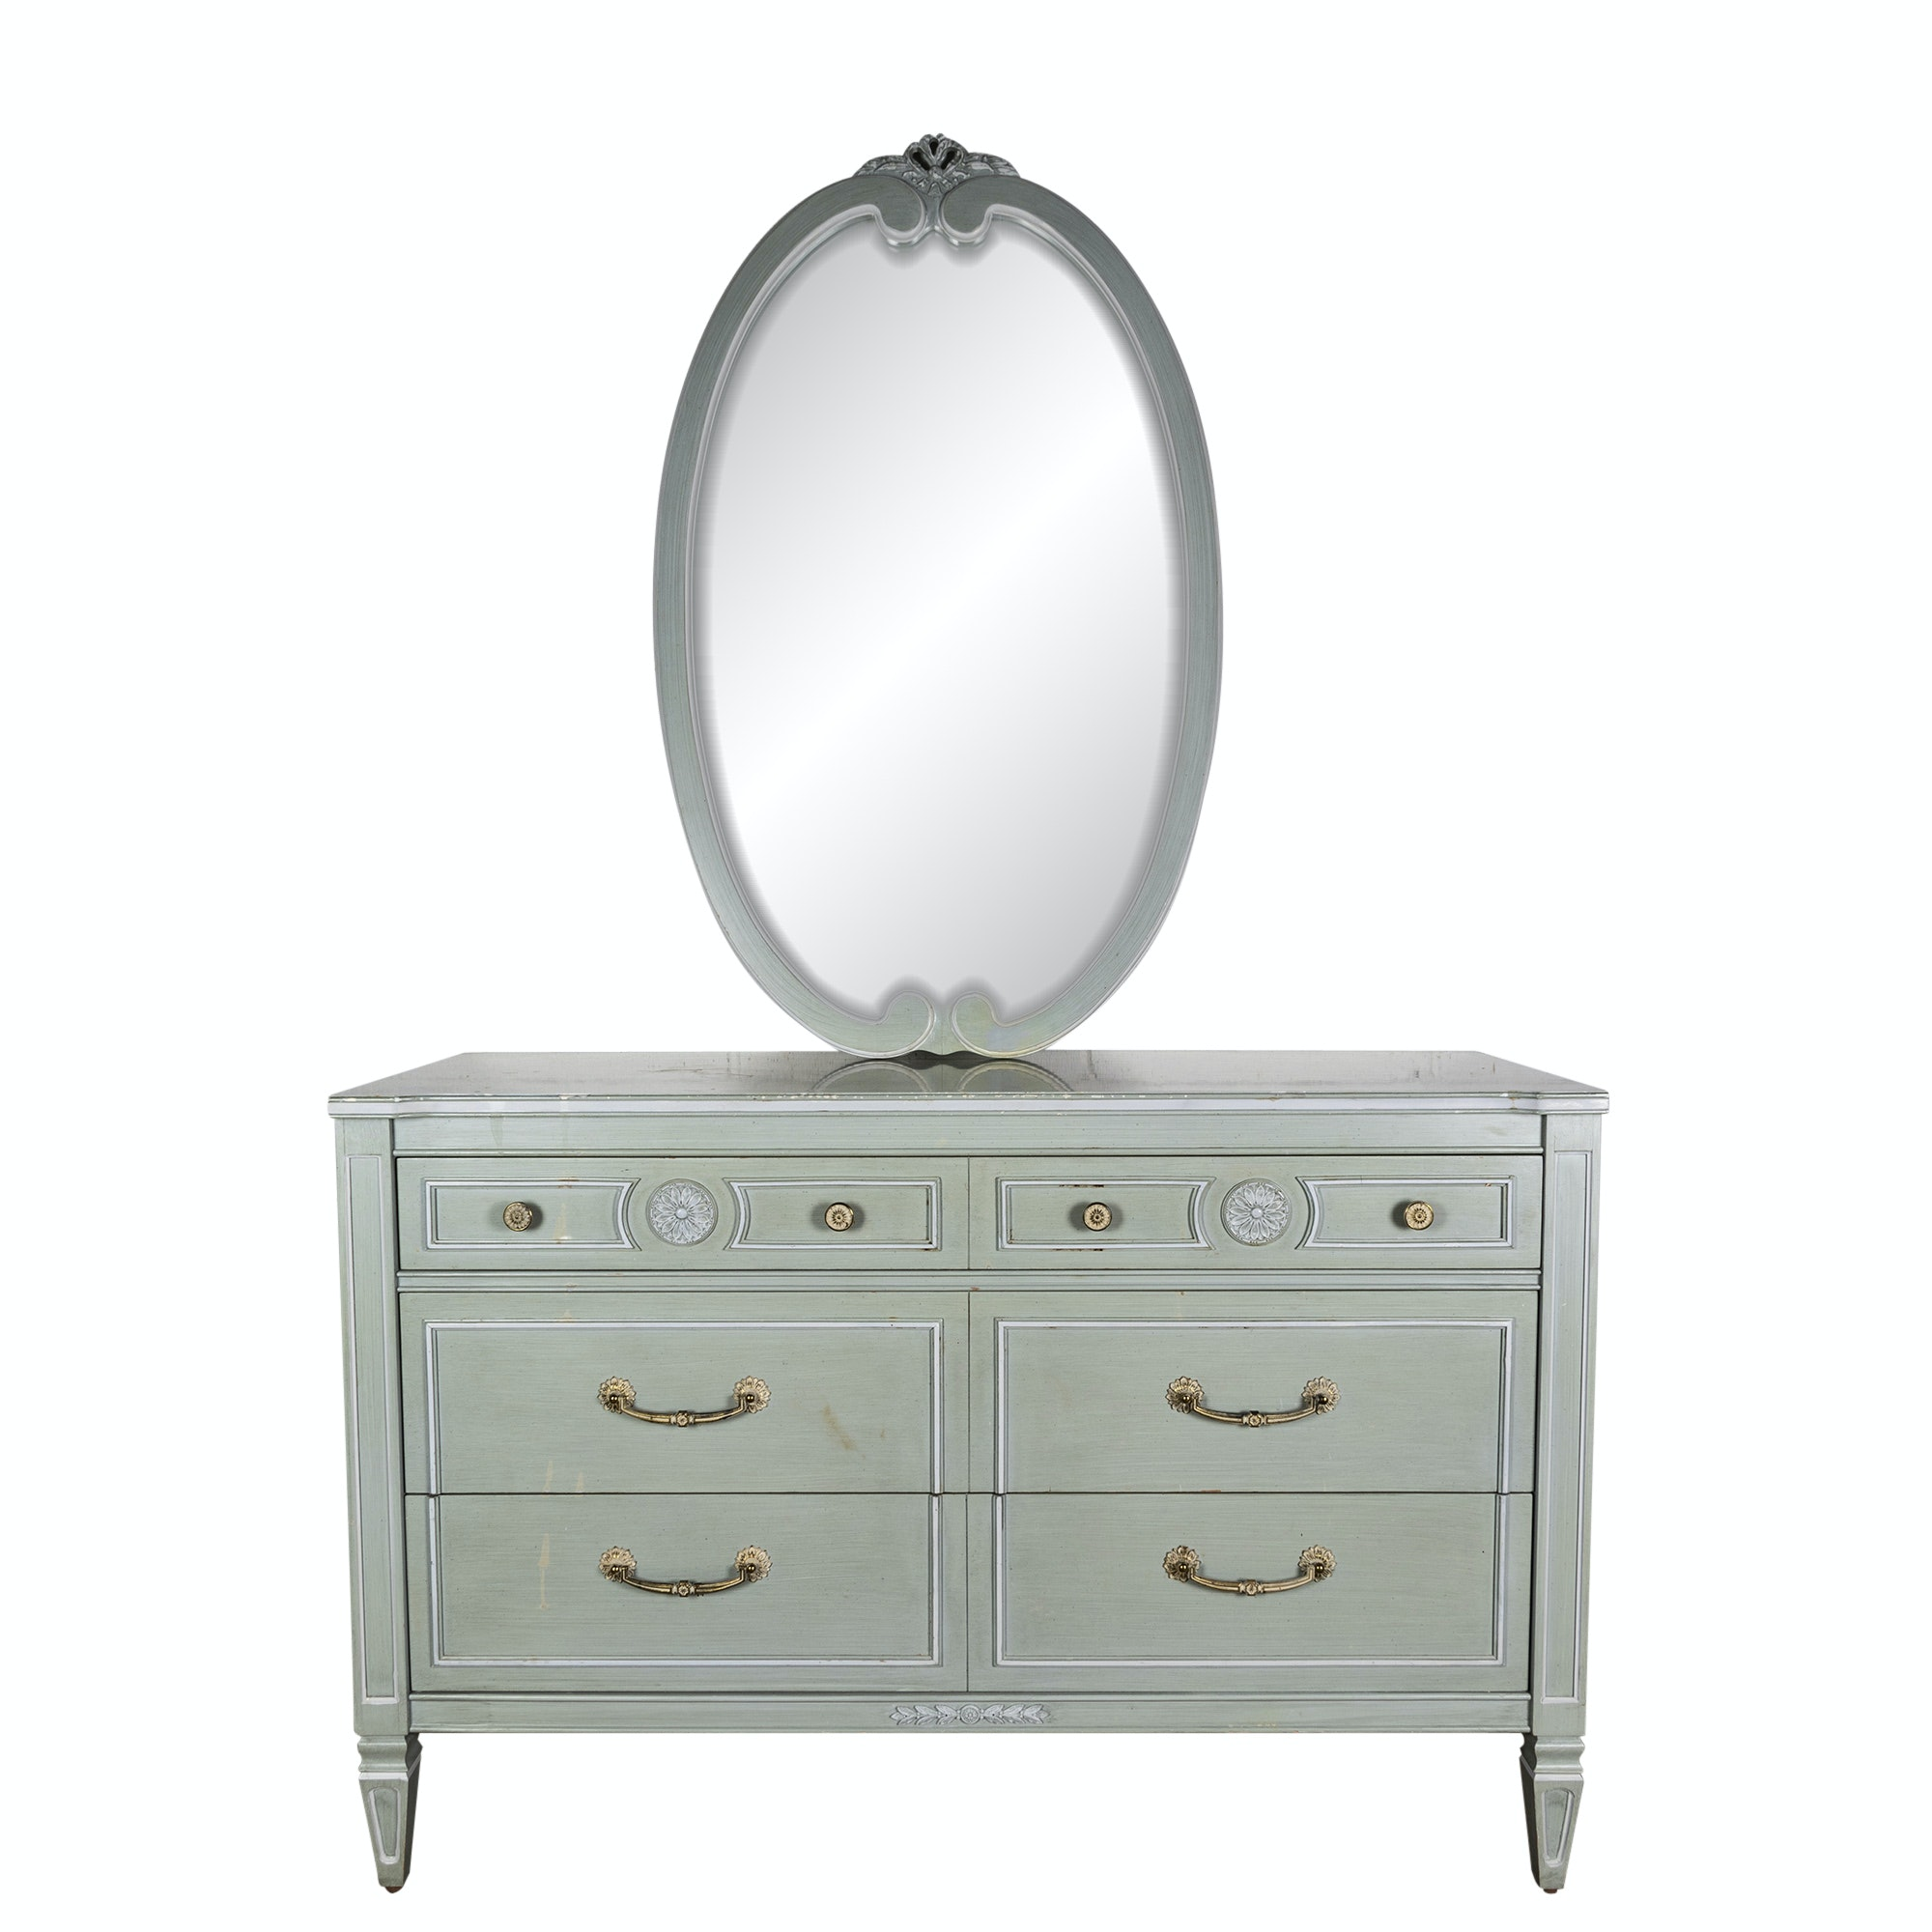 Federal Style Painted Wood Dresser and Mirror by Thomasville, Mid 20th Century